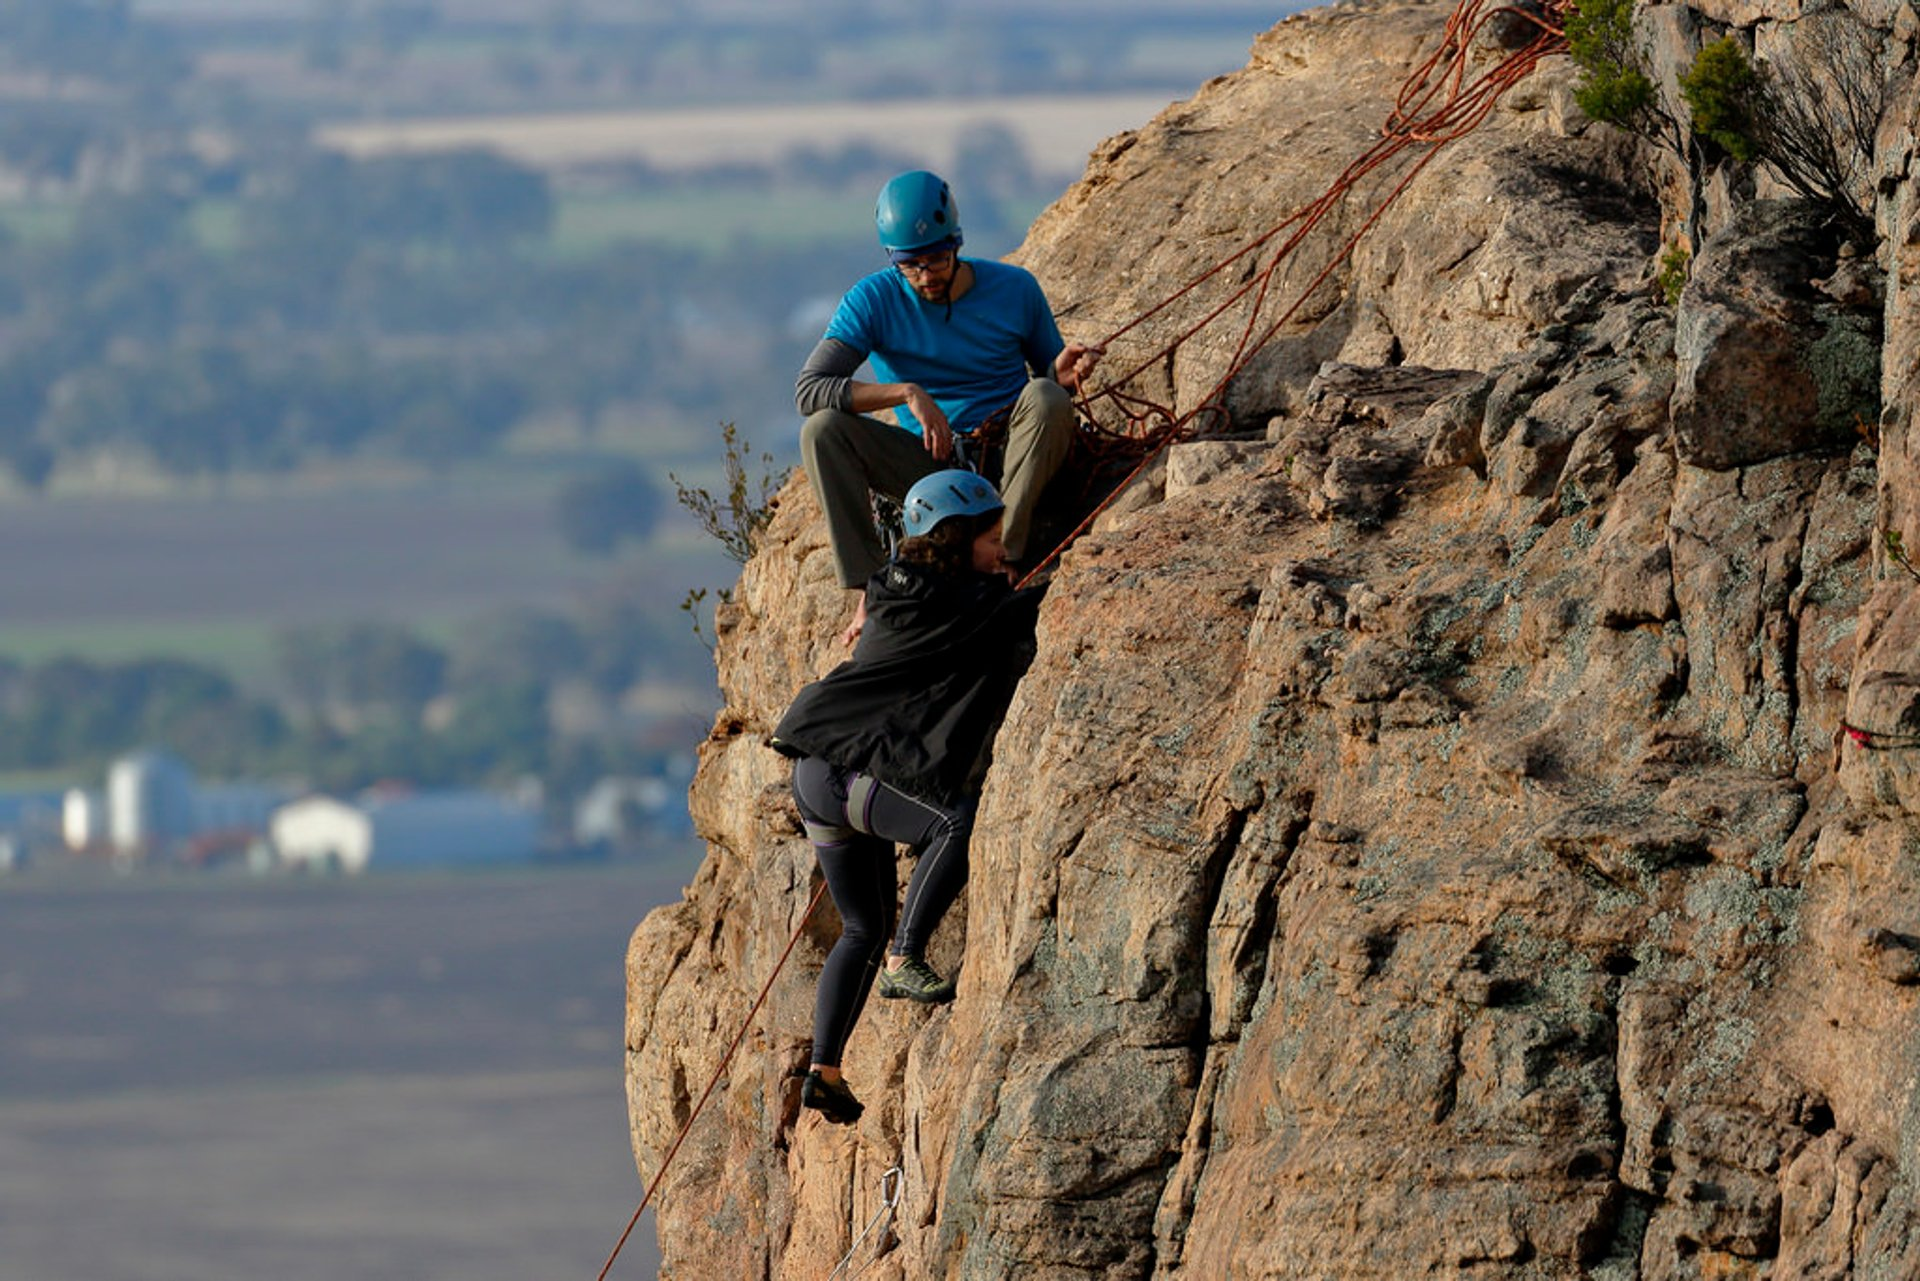 Rock Climbing in Mount Arapiles 2020